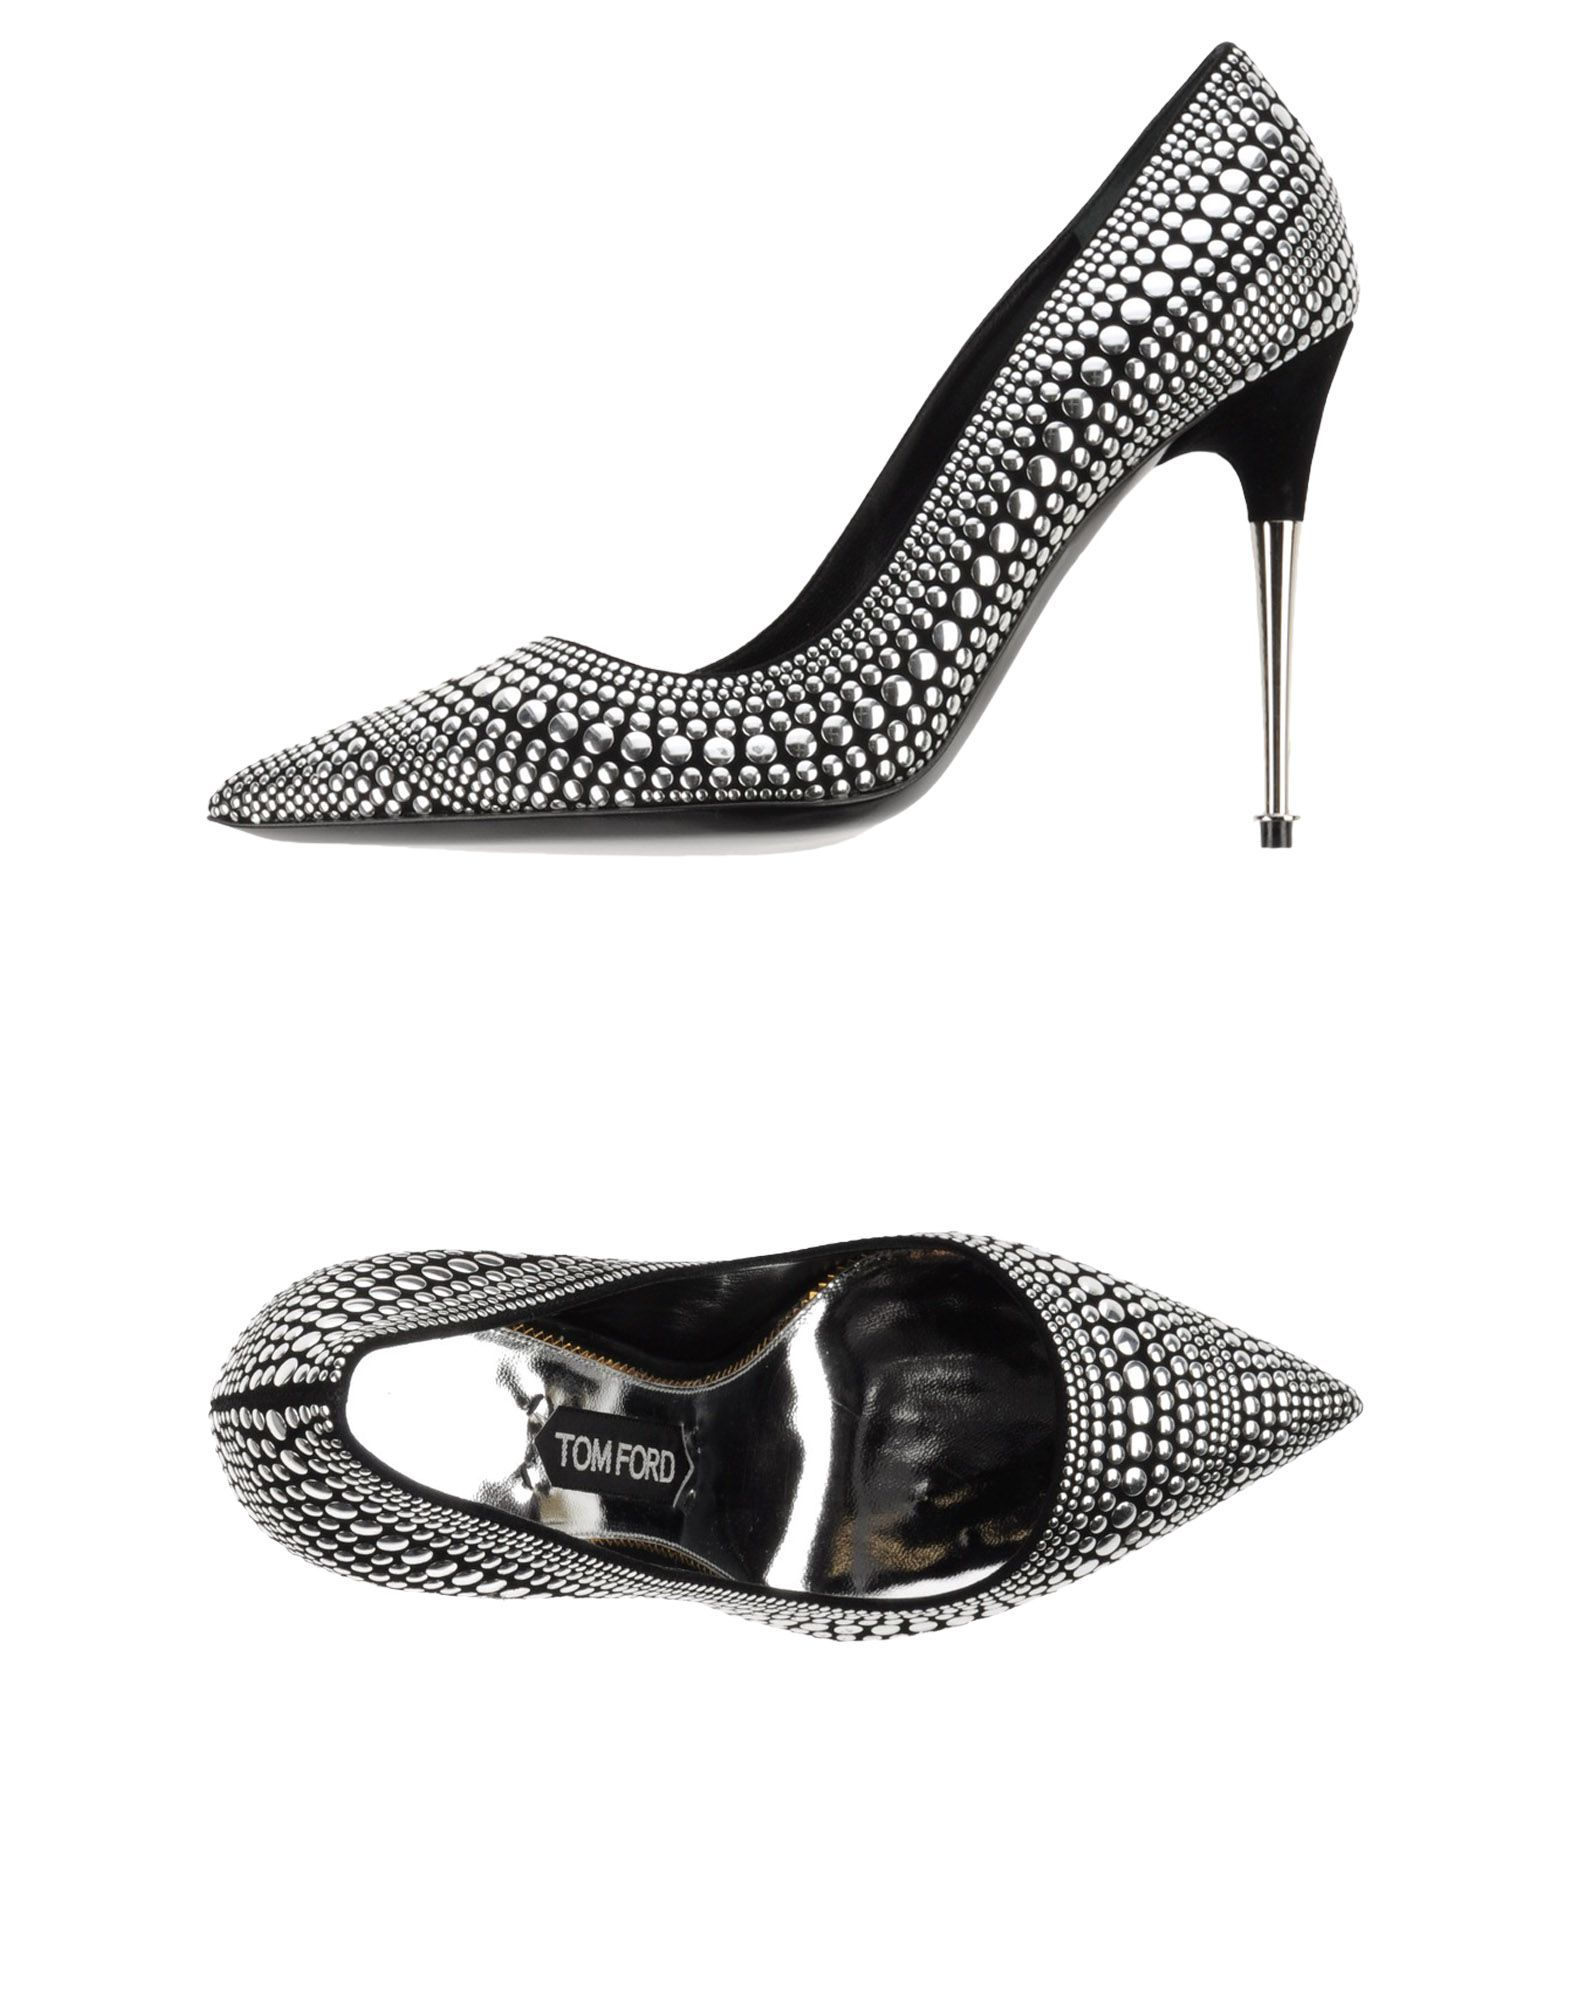 Shop these TOM FORD Pumps here > http://yoox.ly/1idrEGV